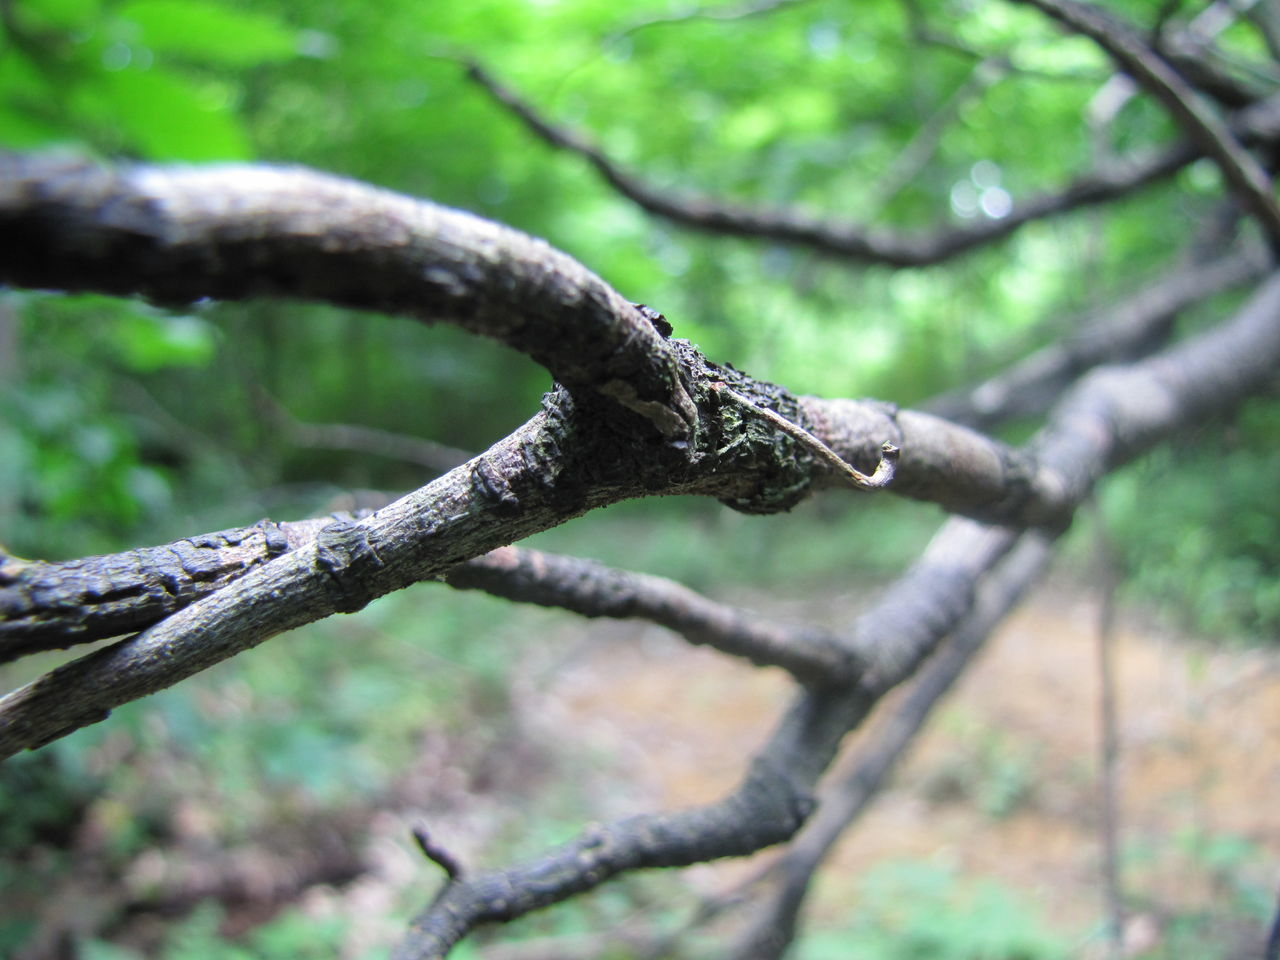 Close-Up Of Twig In Forest